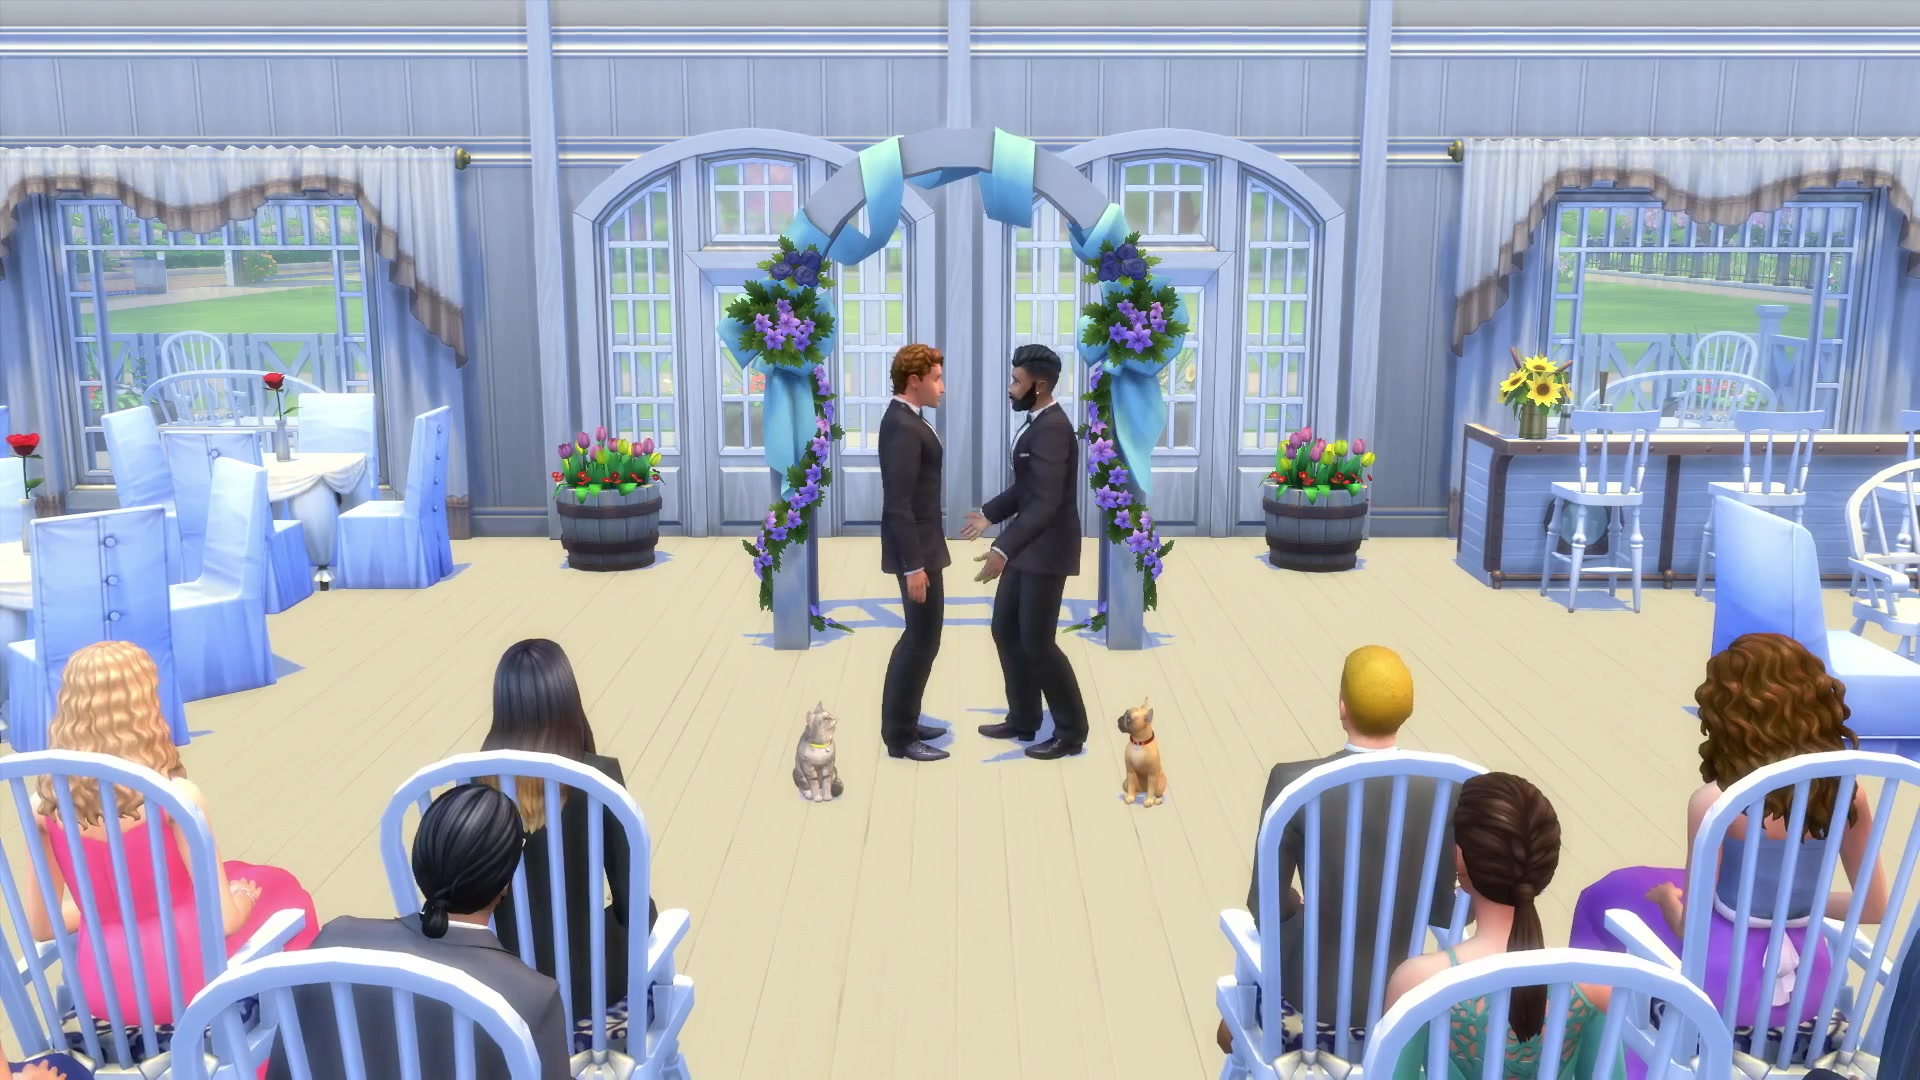 Sims 4: Cats & Dogs Has Foxes, Raccoons And First Preset